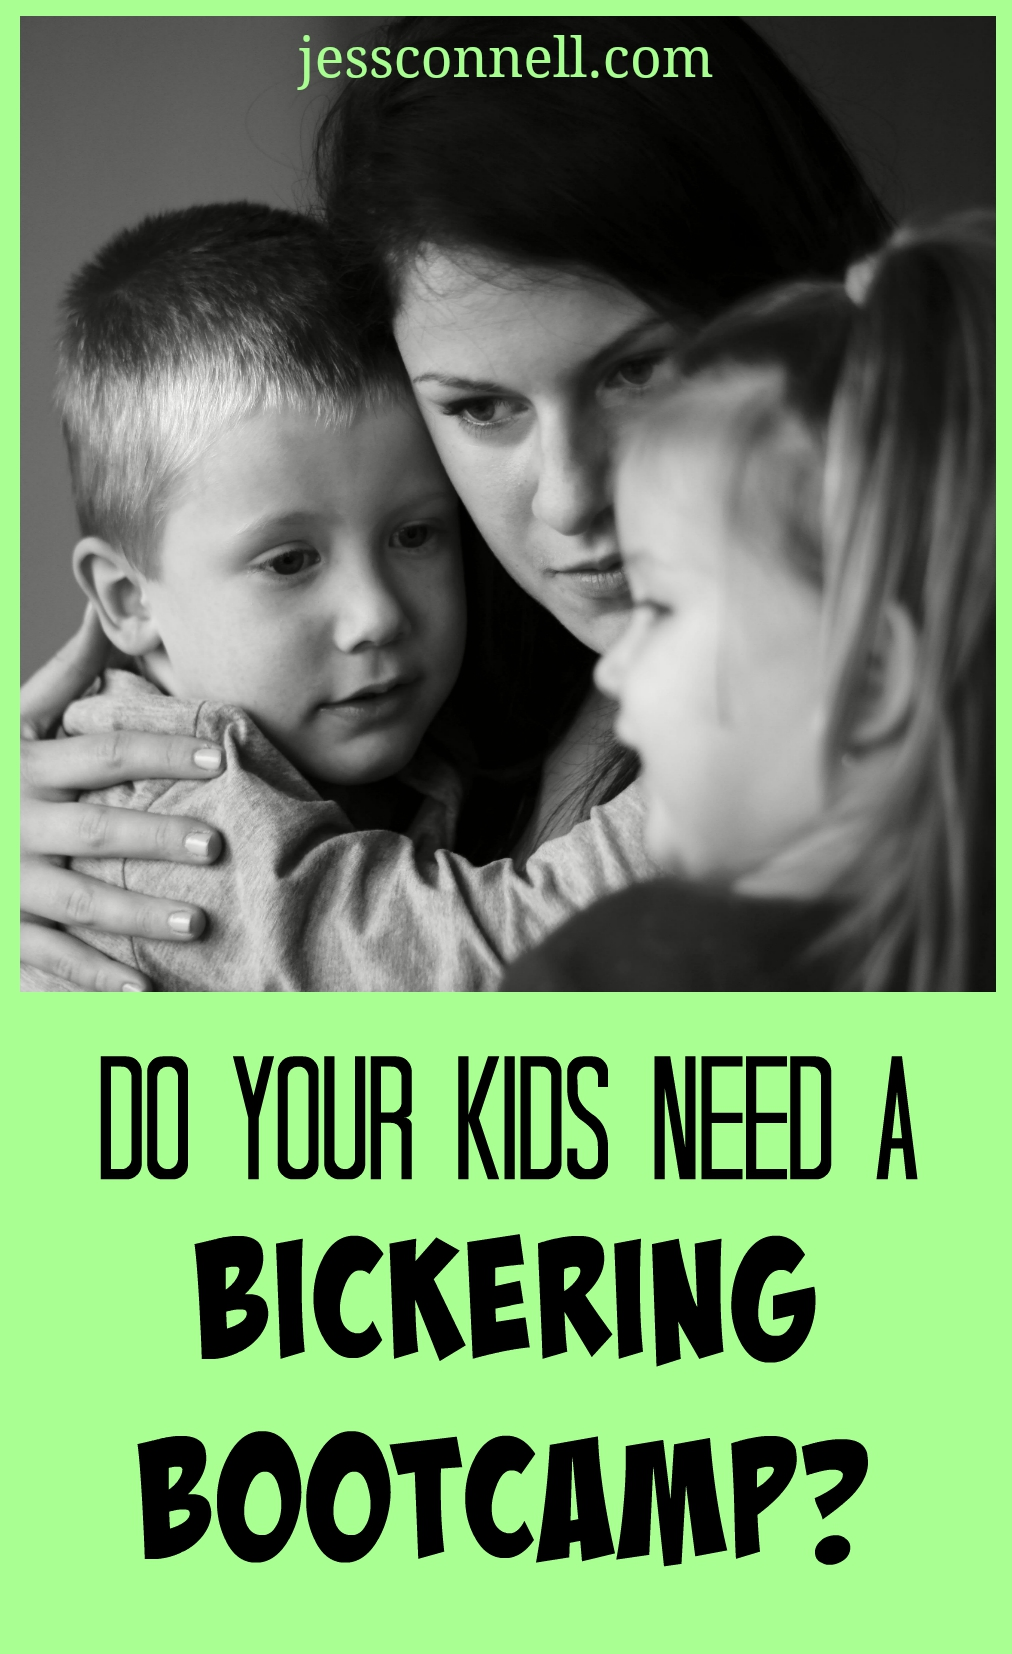 Do Your Kids Need a BICKERING BOOTCAMP? // jessconnell.com